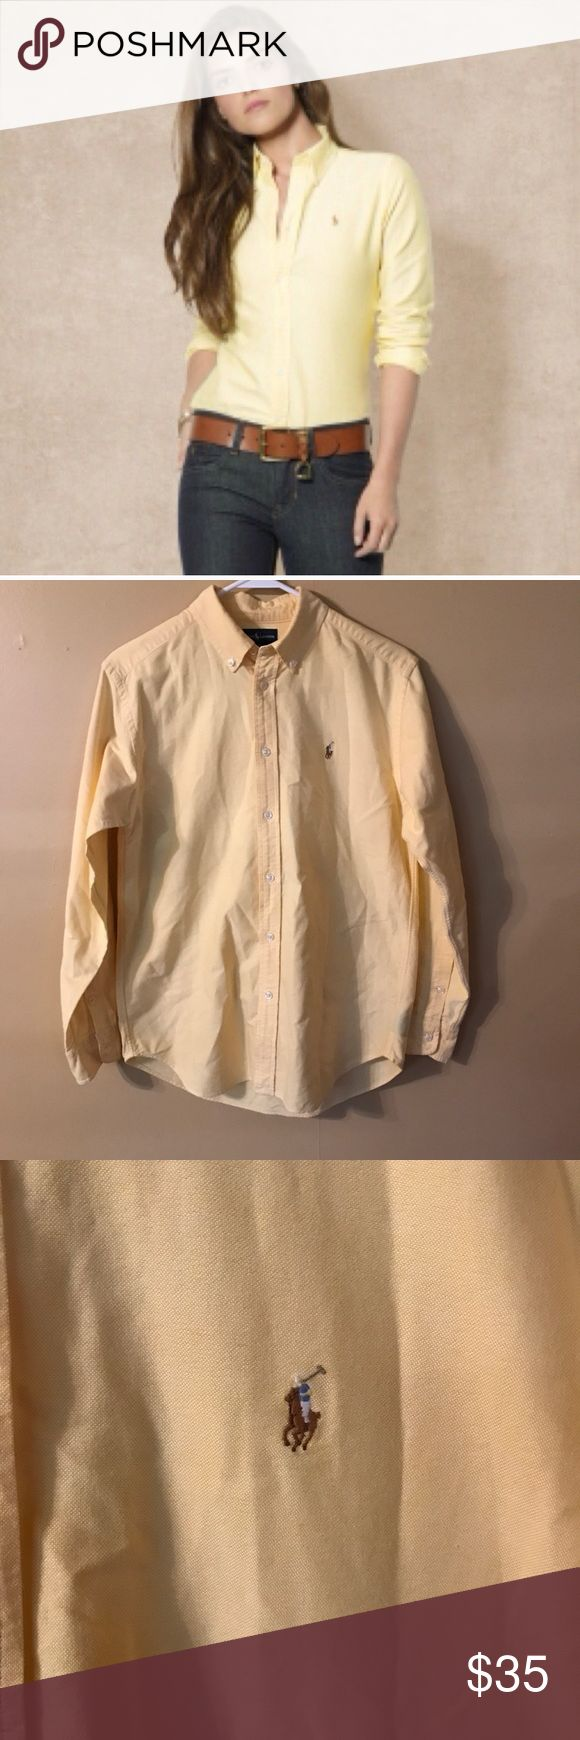 "Ralph Lauren women's oxford button down Women's Ralph Lauren yellow button down oxford shirt in excellent used condition. Size 16 but made smaller in my opinion. I normally wear a 14 or 16 with a 38 C bust but it won't button on me. Bust measures 20"" laying flat while buttoned. Ralph Lauren Tops Button Down Shirts"